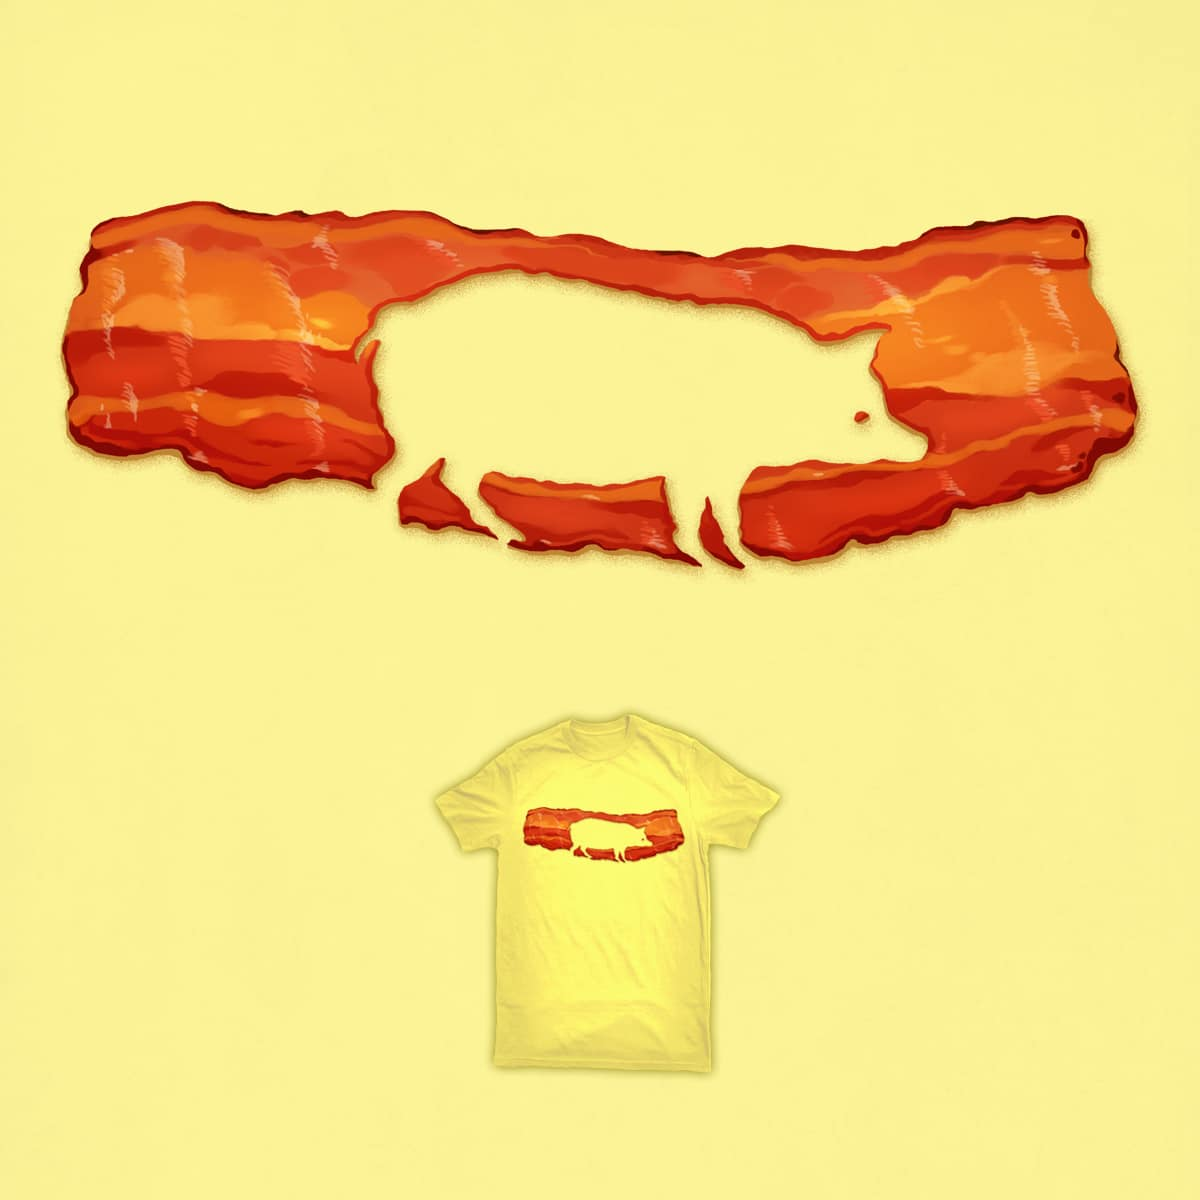 Bacon Pig by ben chen on Threadless